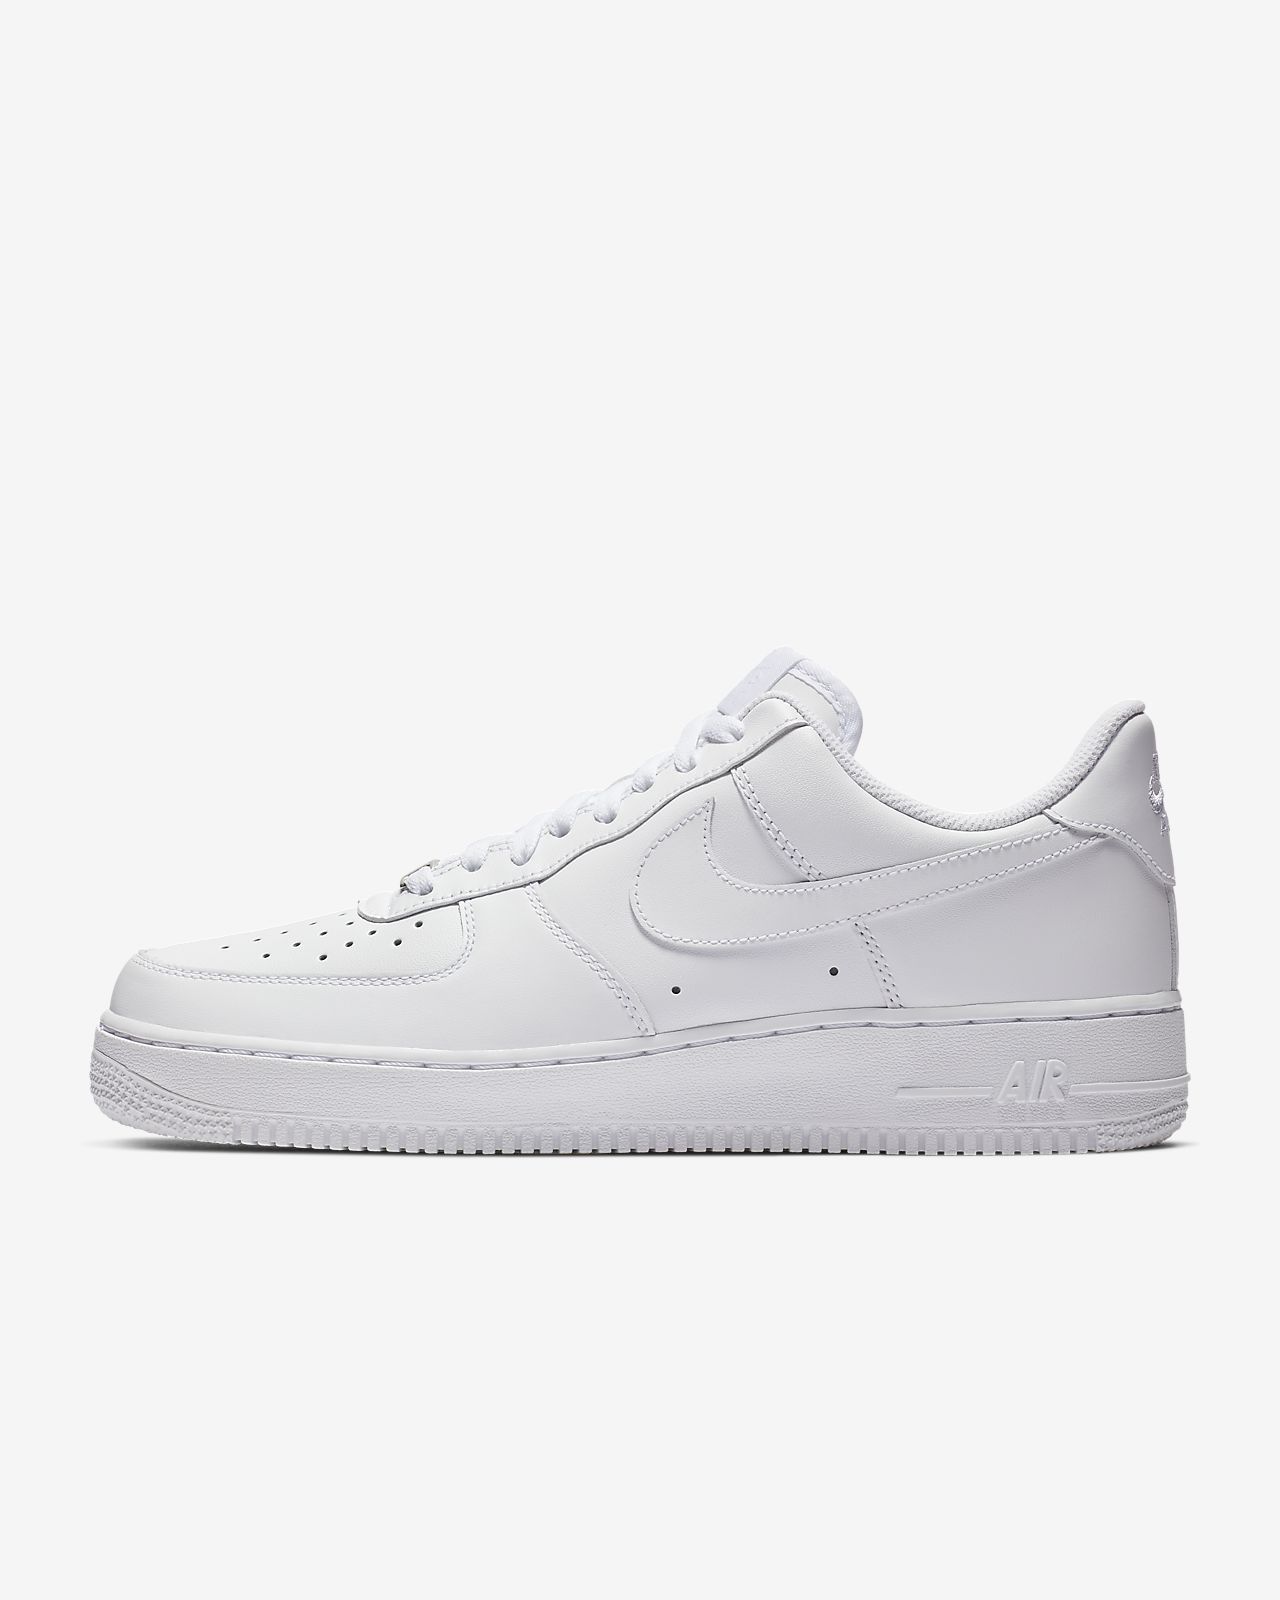 65606ee66f7 Nike Air Force 1 '07 Women's Shoe